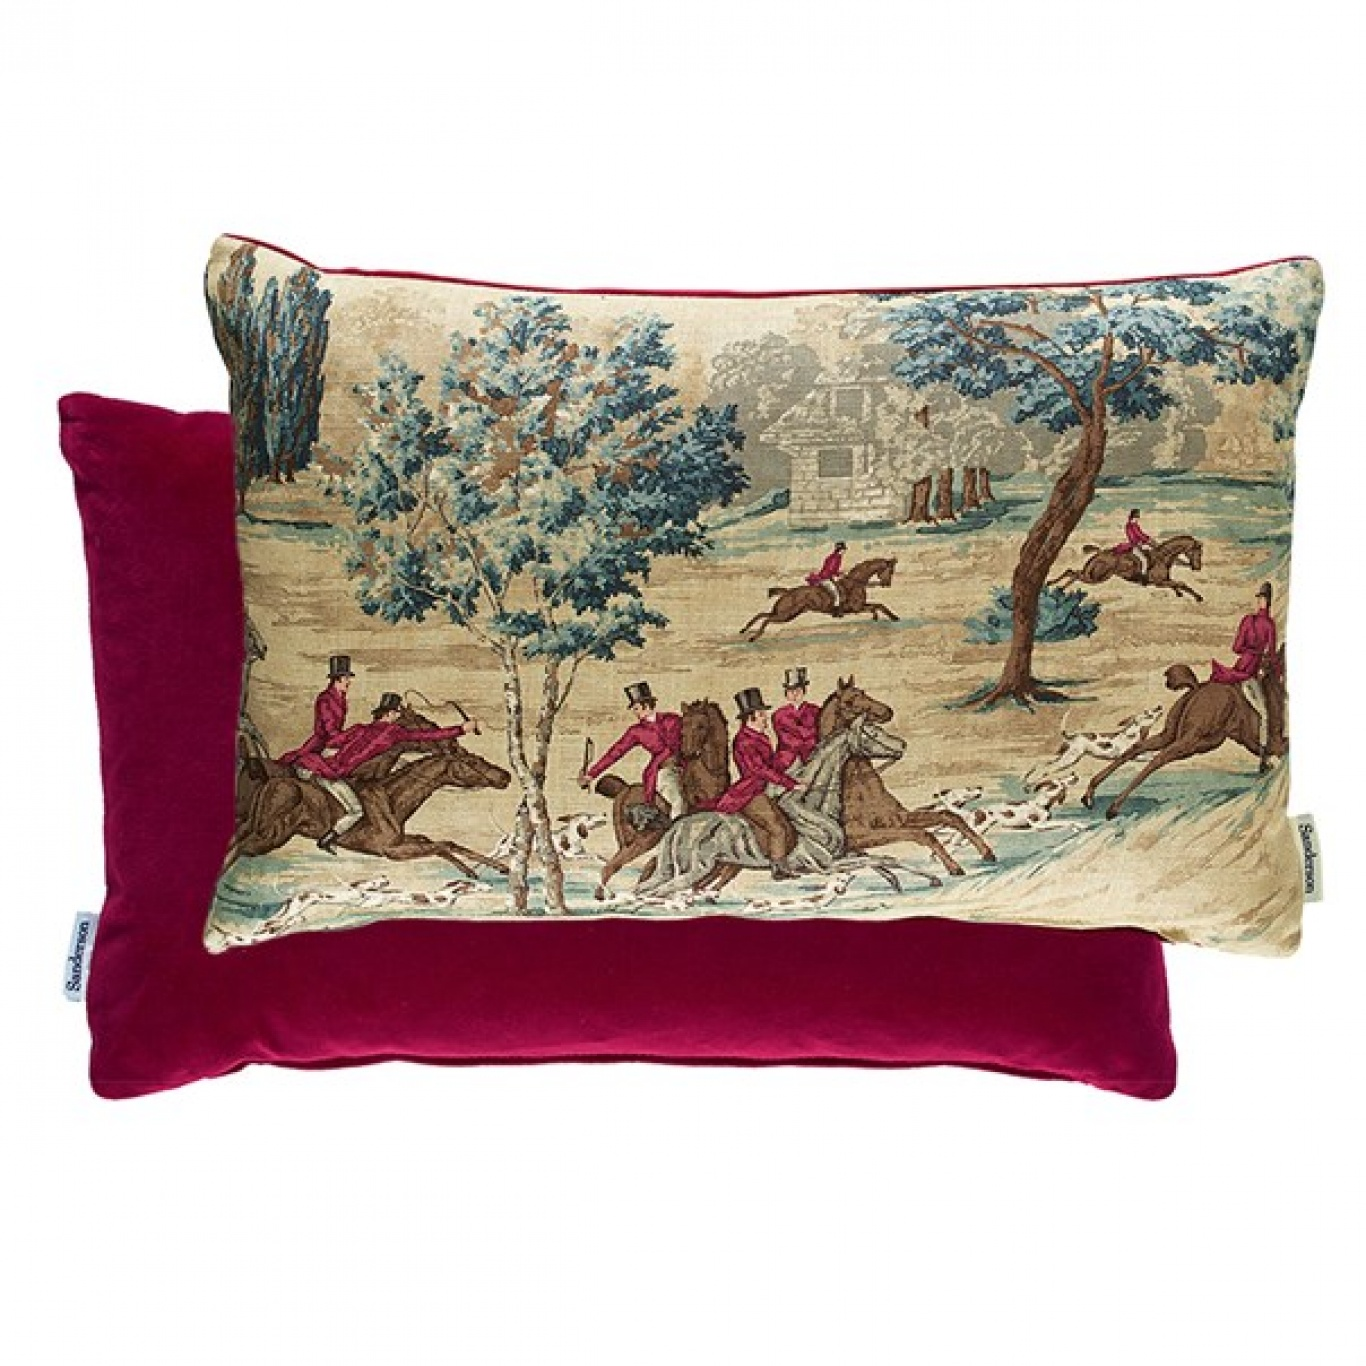 Image of Sanderson Tally Ho Teal/Ruby Cushion